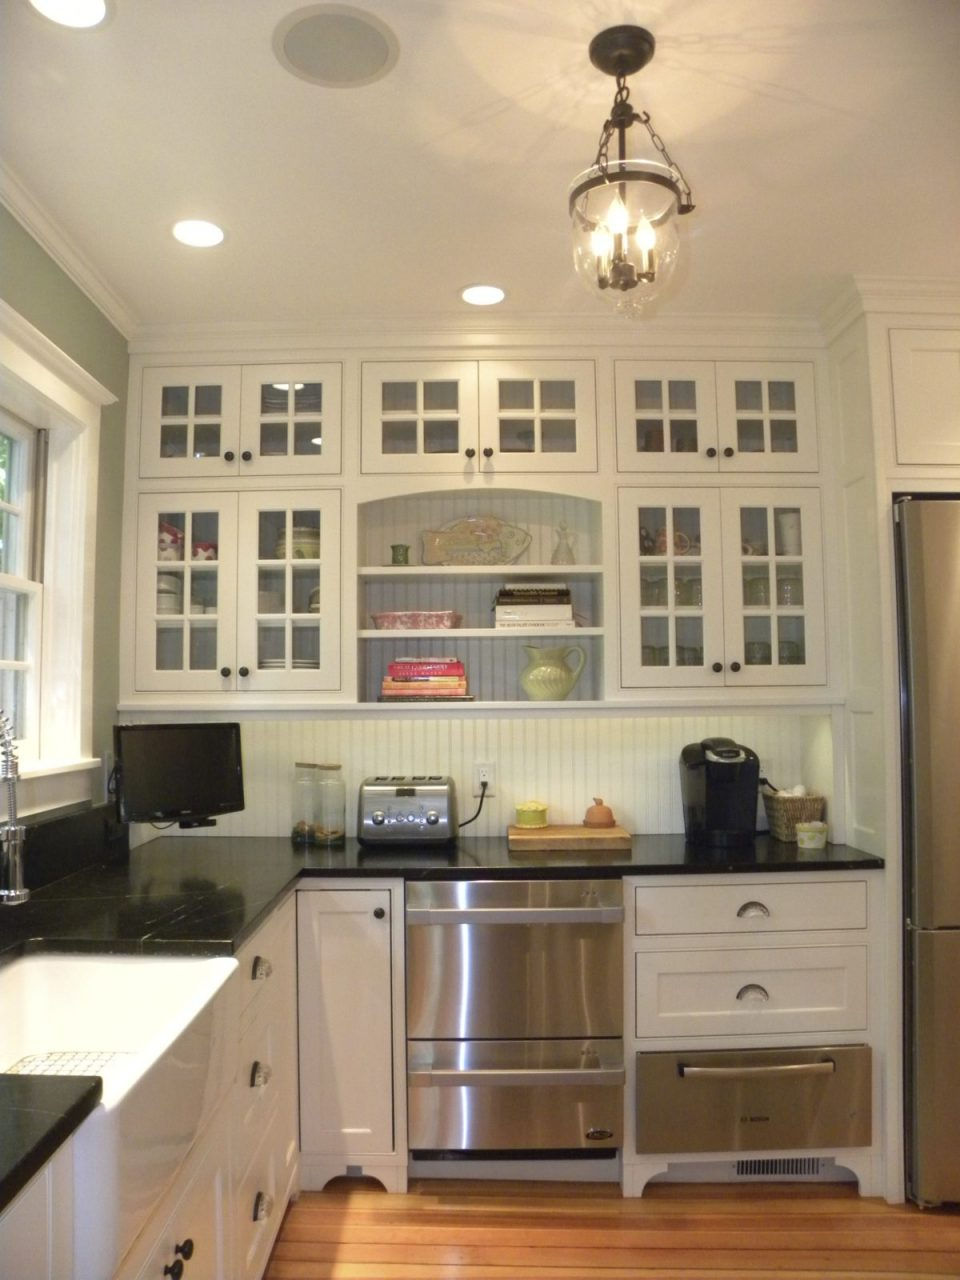 Revitalization Of A Greek Revival Kitchen Fine Homebuilding